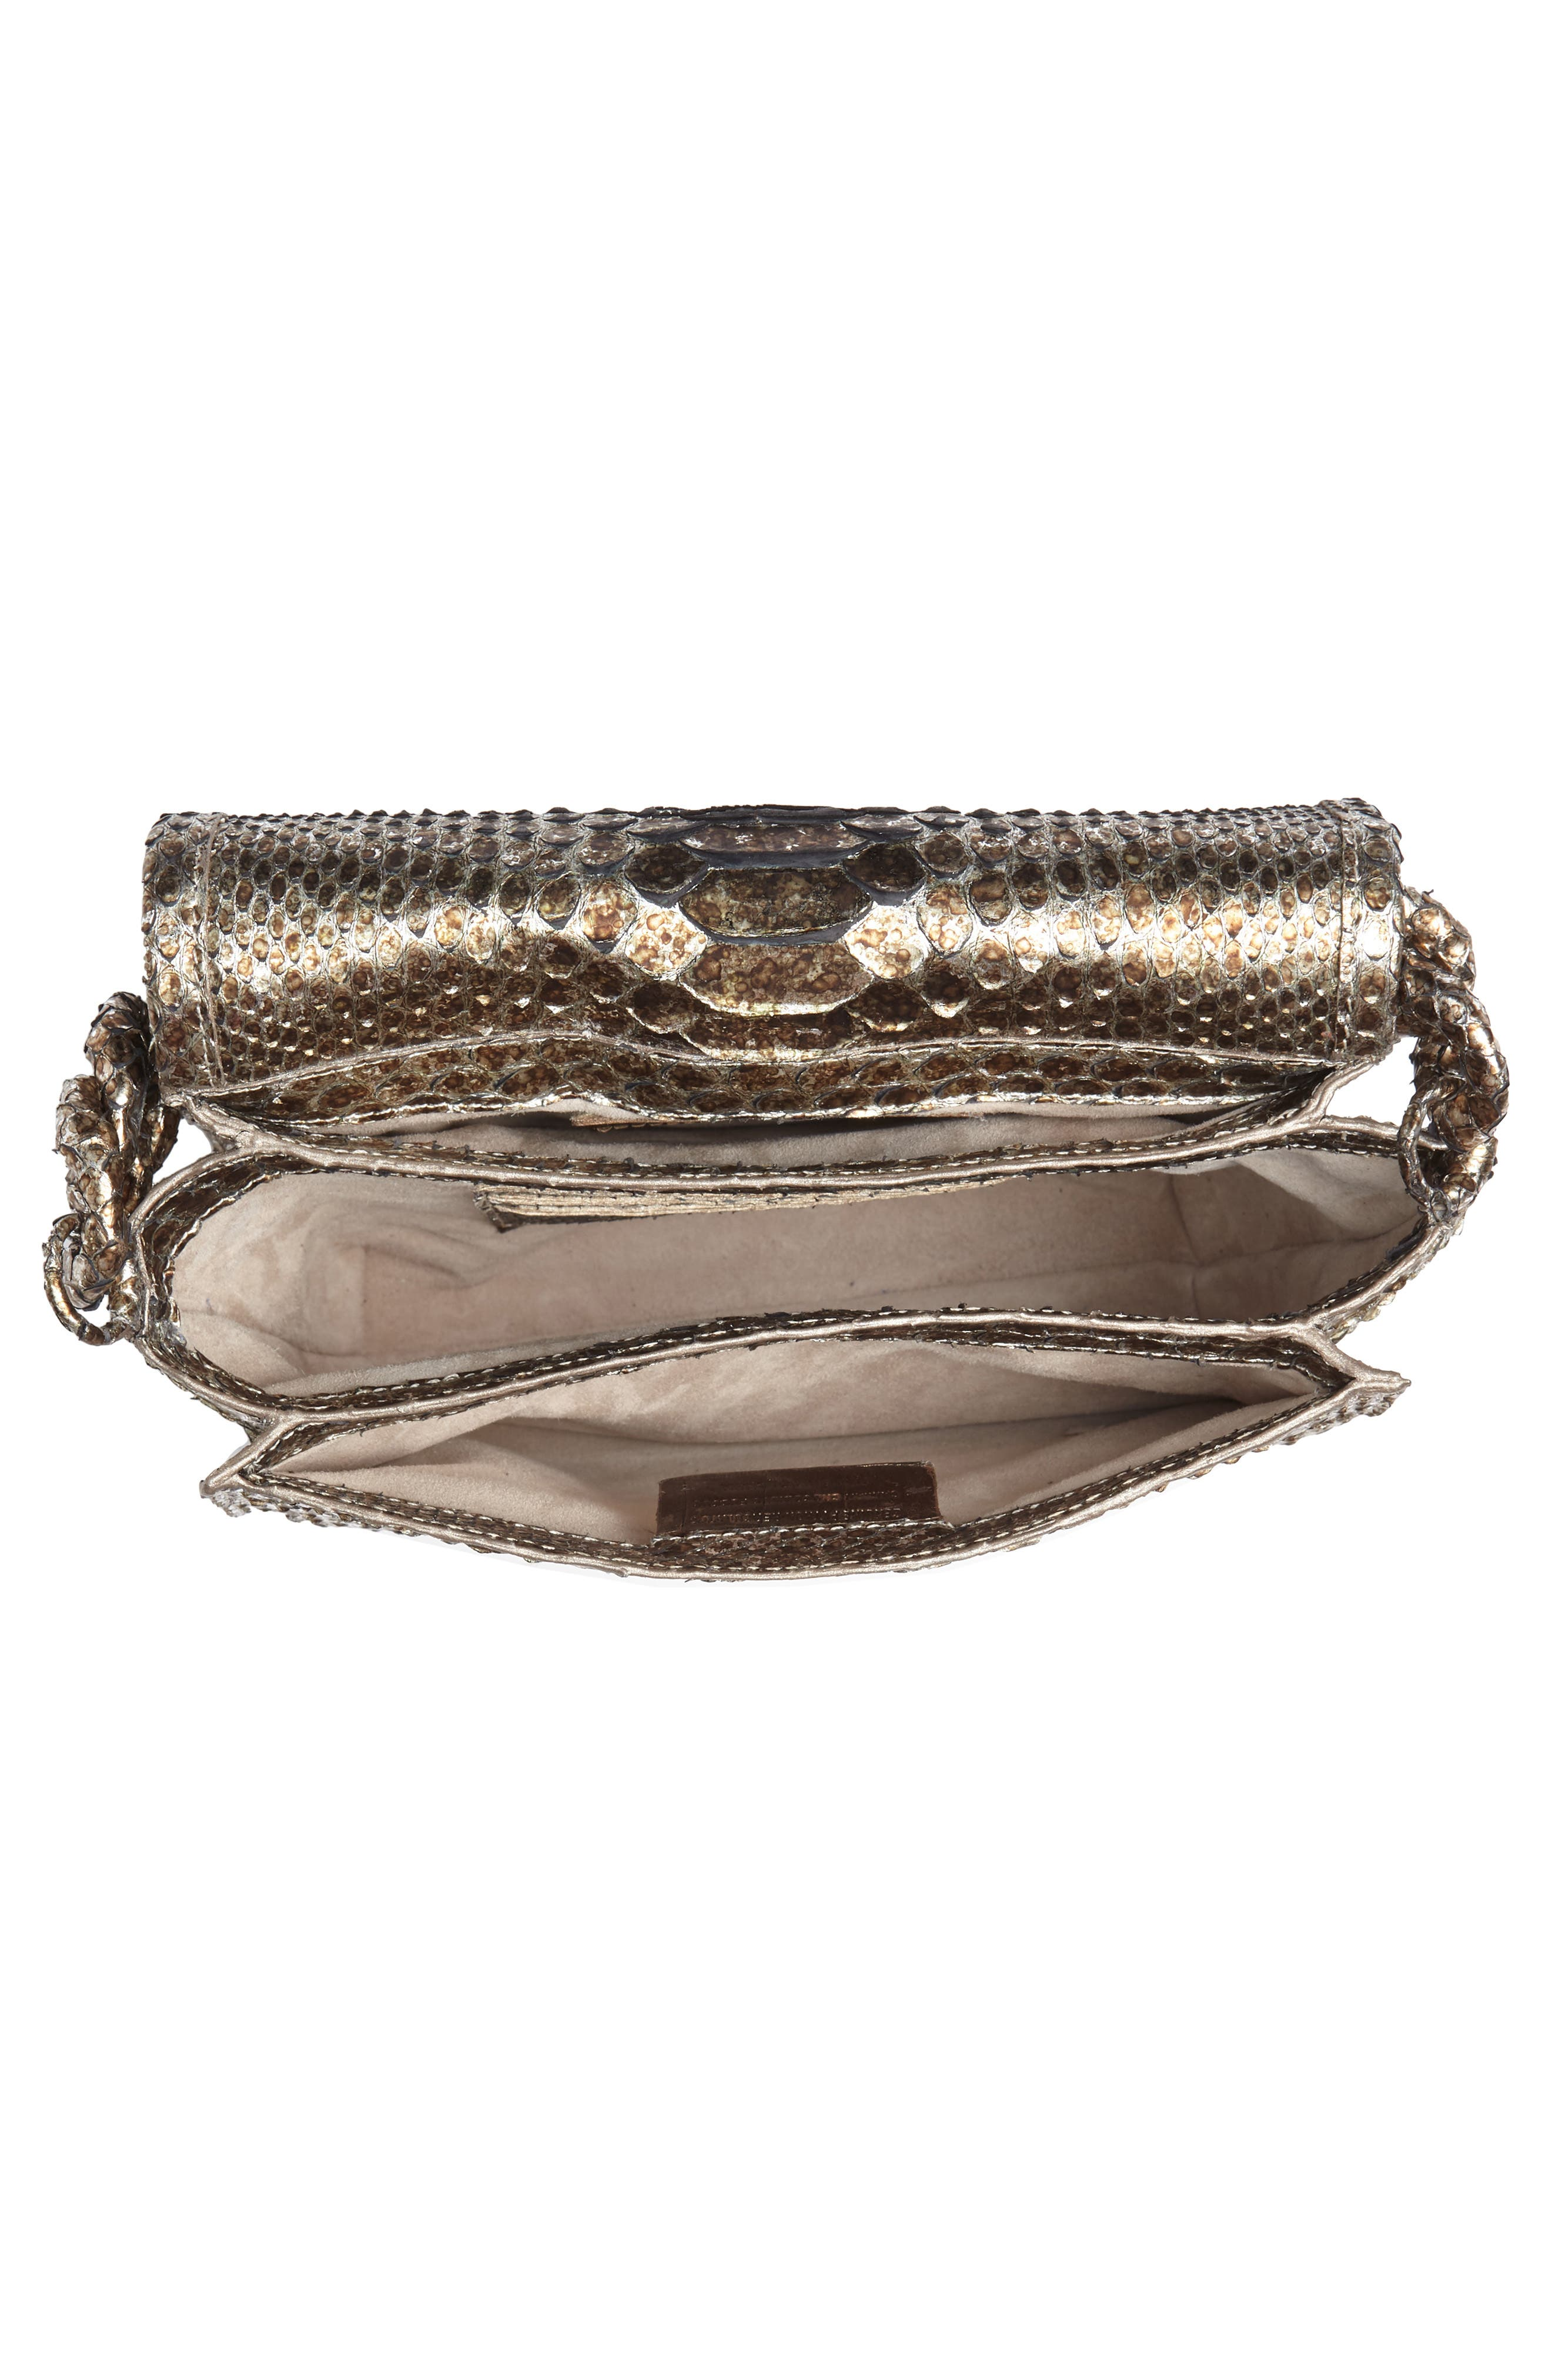 Small Carrie Genuine Crocodile Metallic Clutch,                             Alternate thumbnail 3, color,                             Metallic Gold